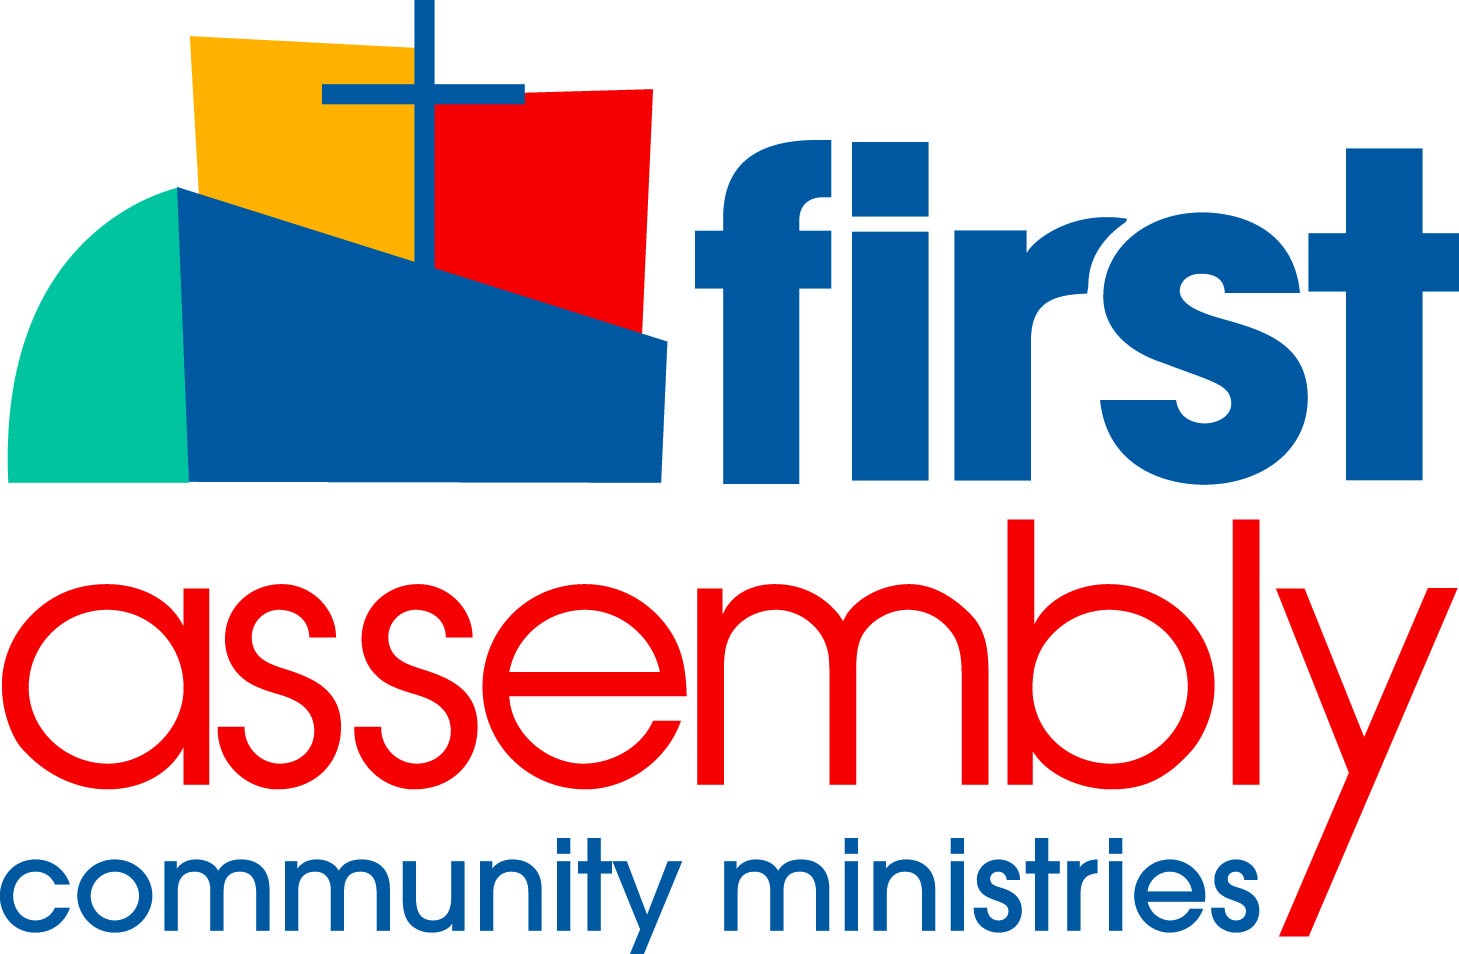 First assembly community ministries in lafayette indiana offers river